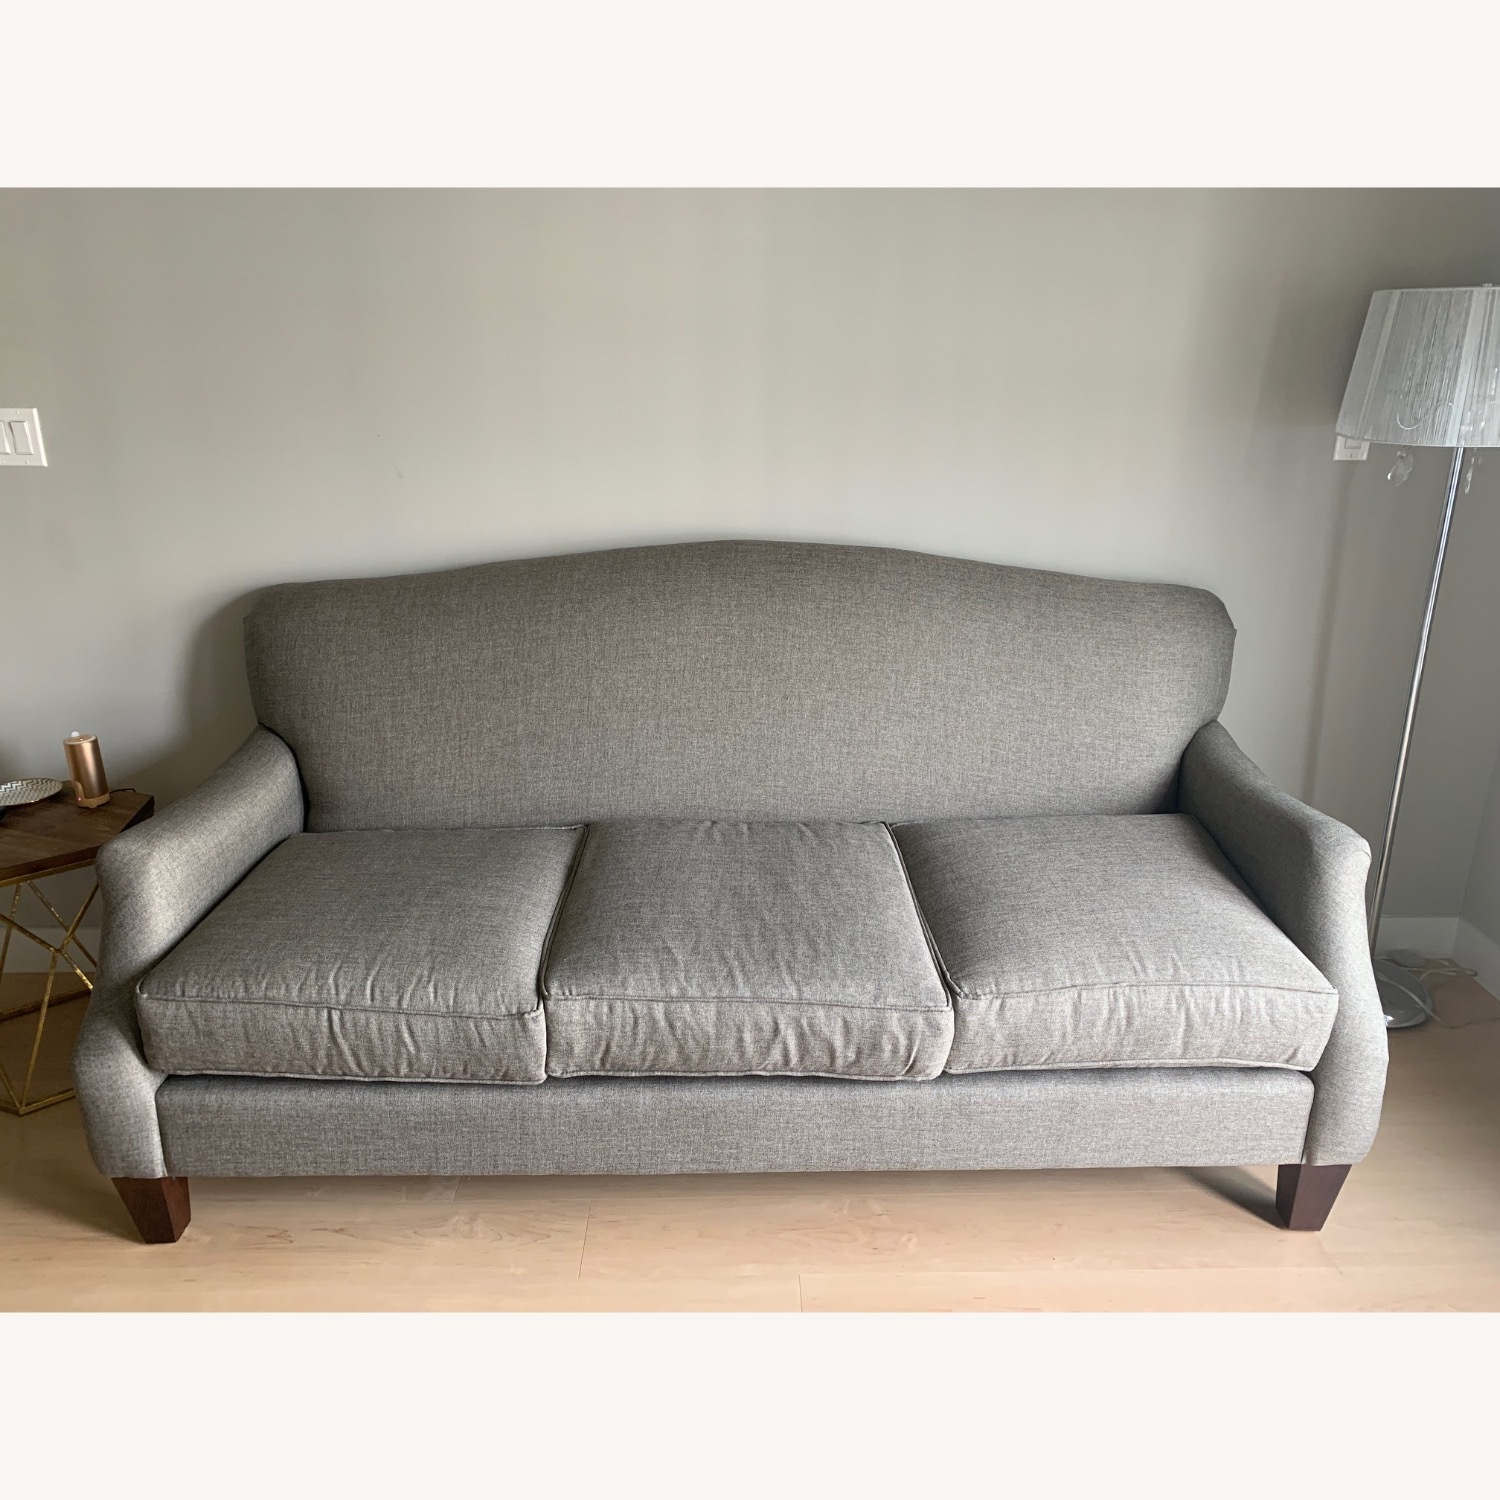 Grey Couch - image-2